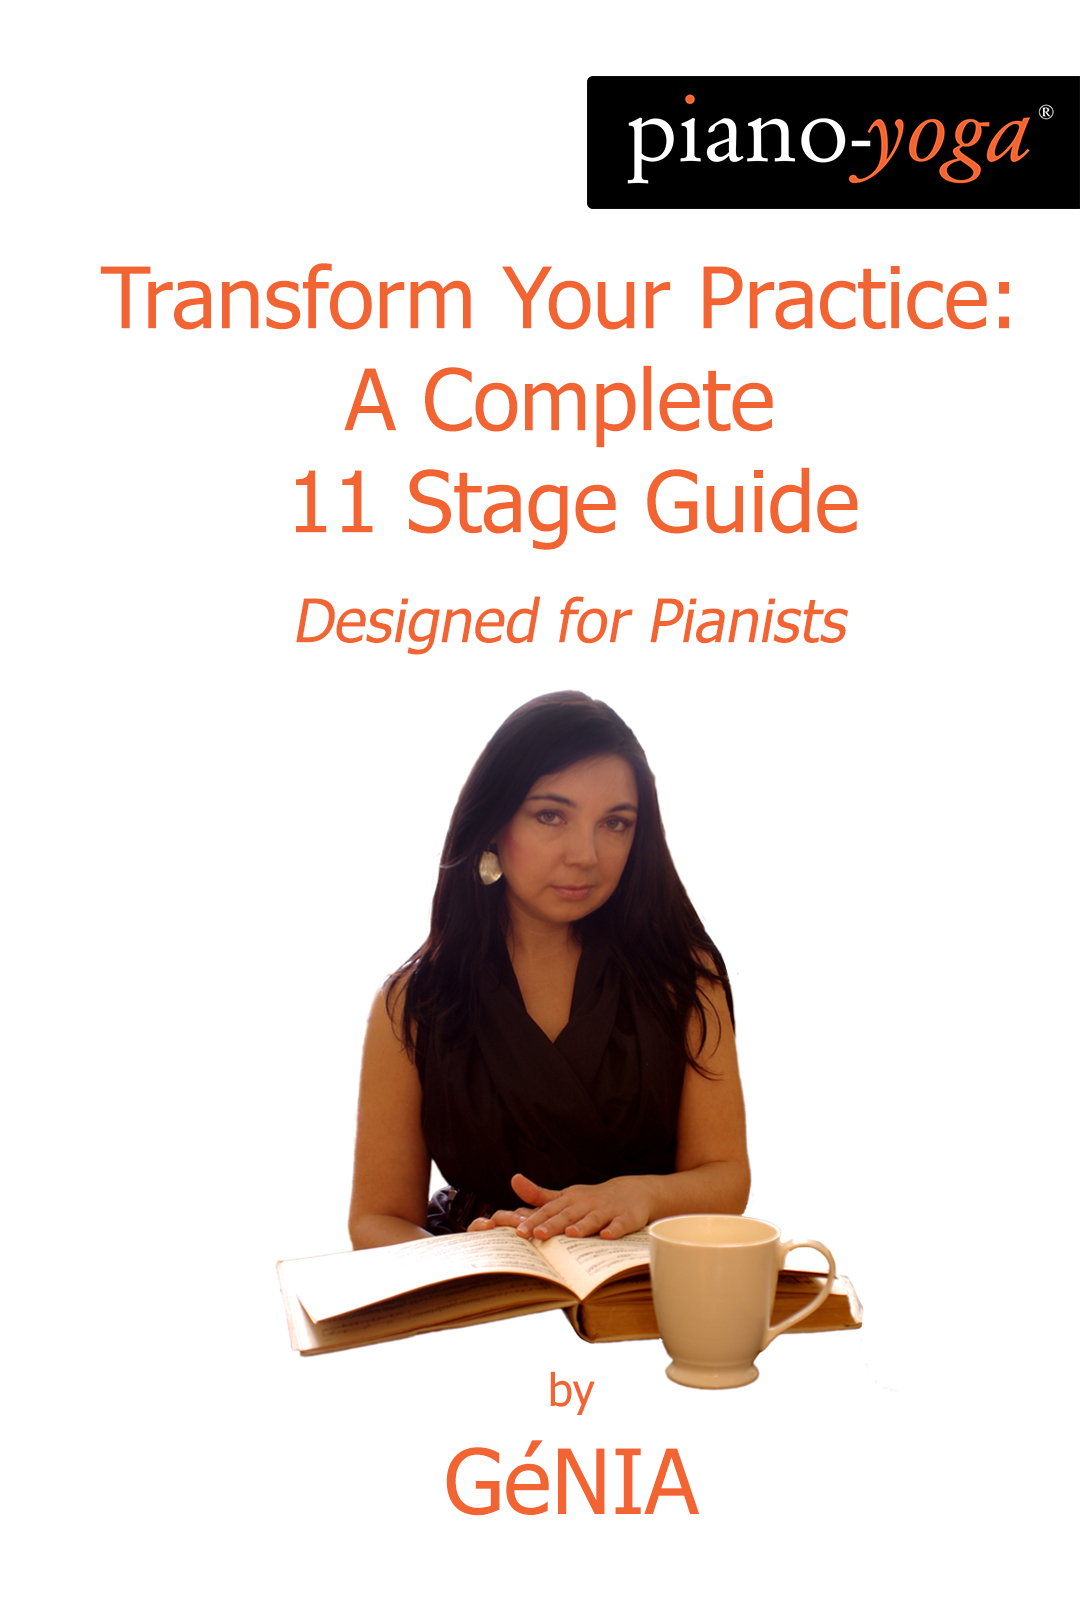 GéNIA launches 'Transform Your Practice: A Complete 11 Stage Guide'